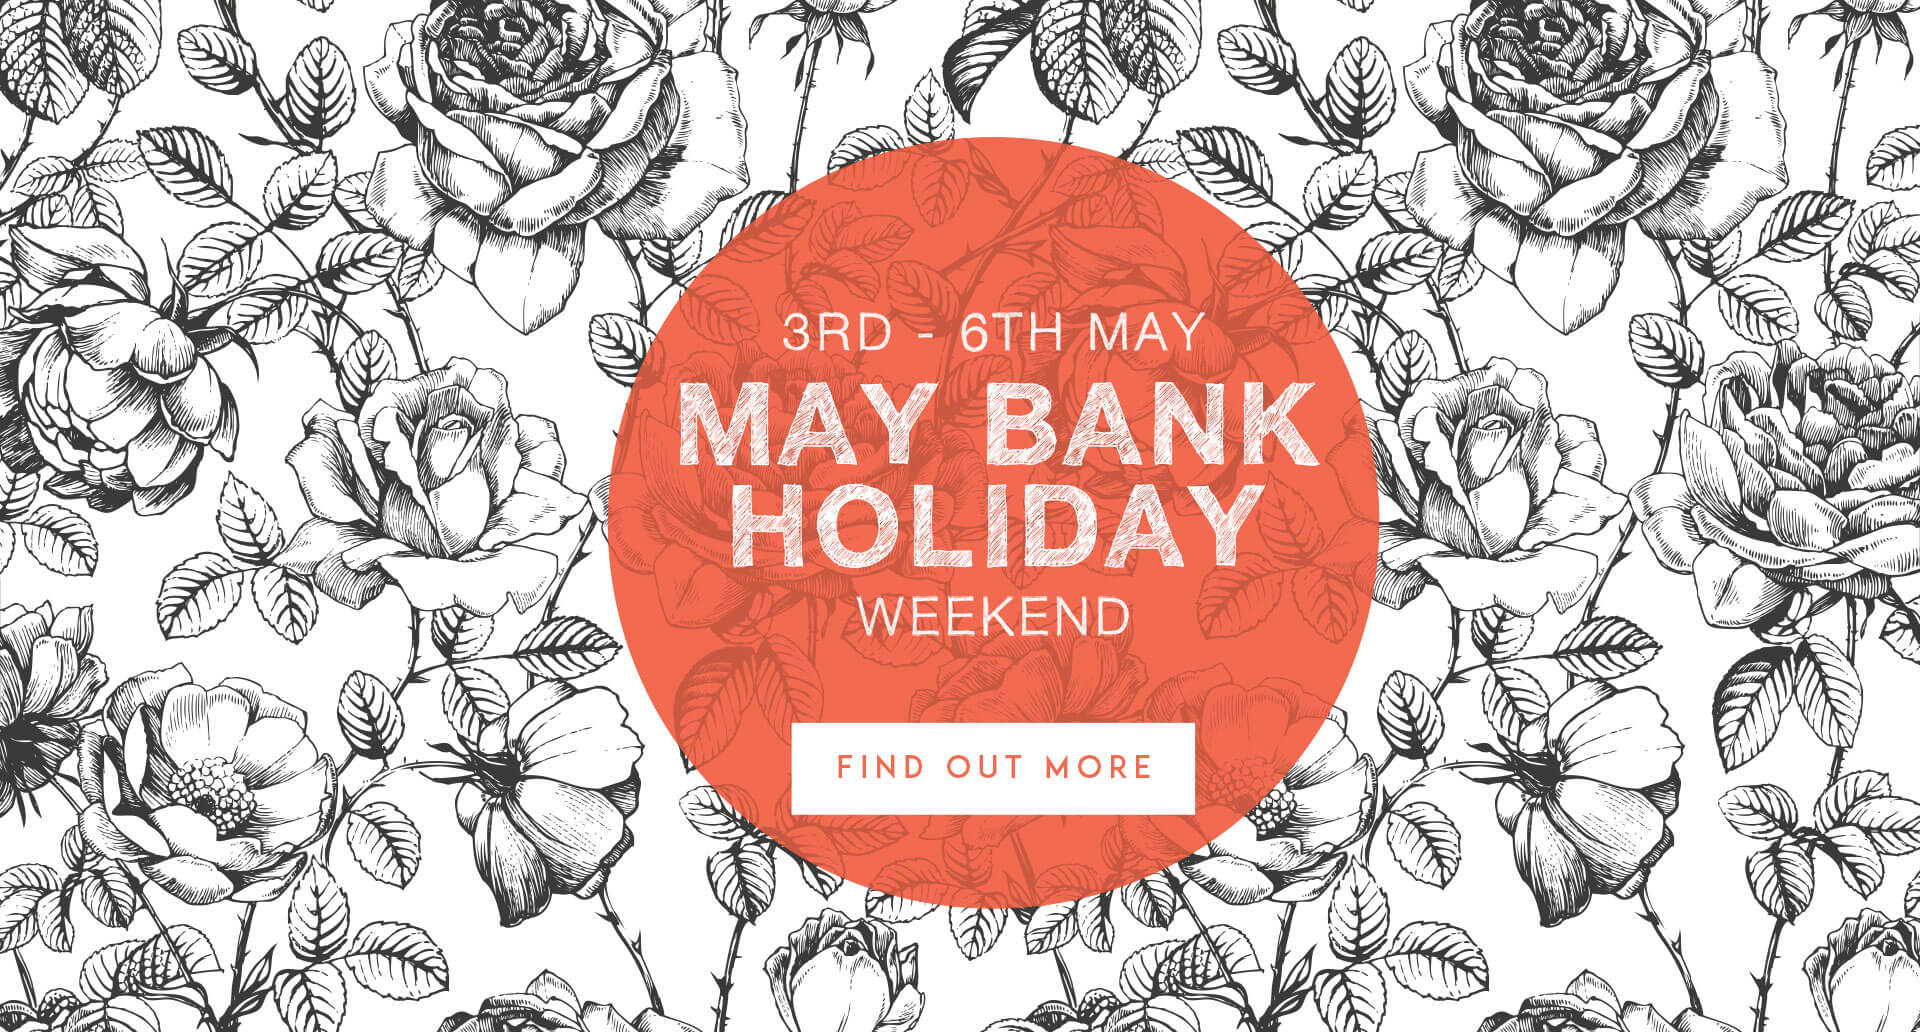 May Bank Holiday at The Lamb